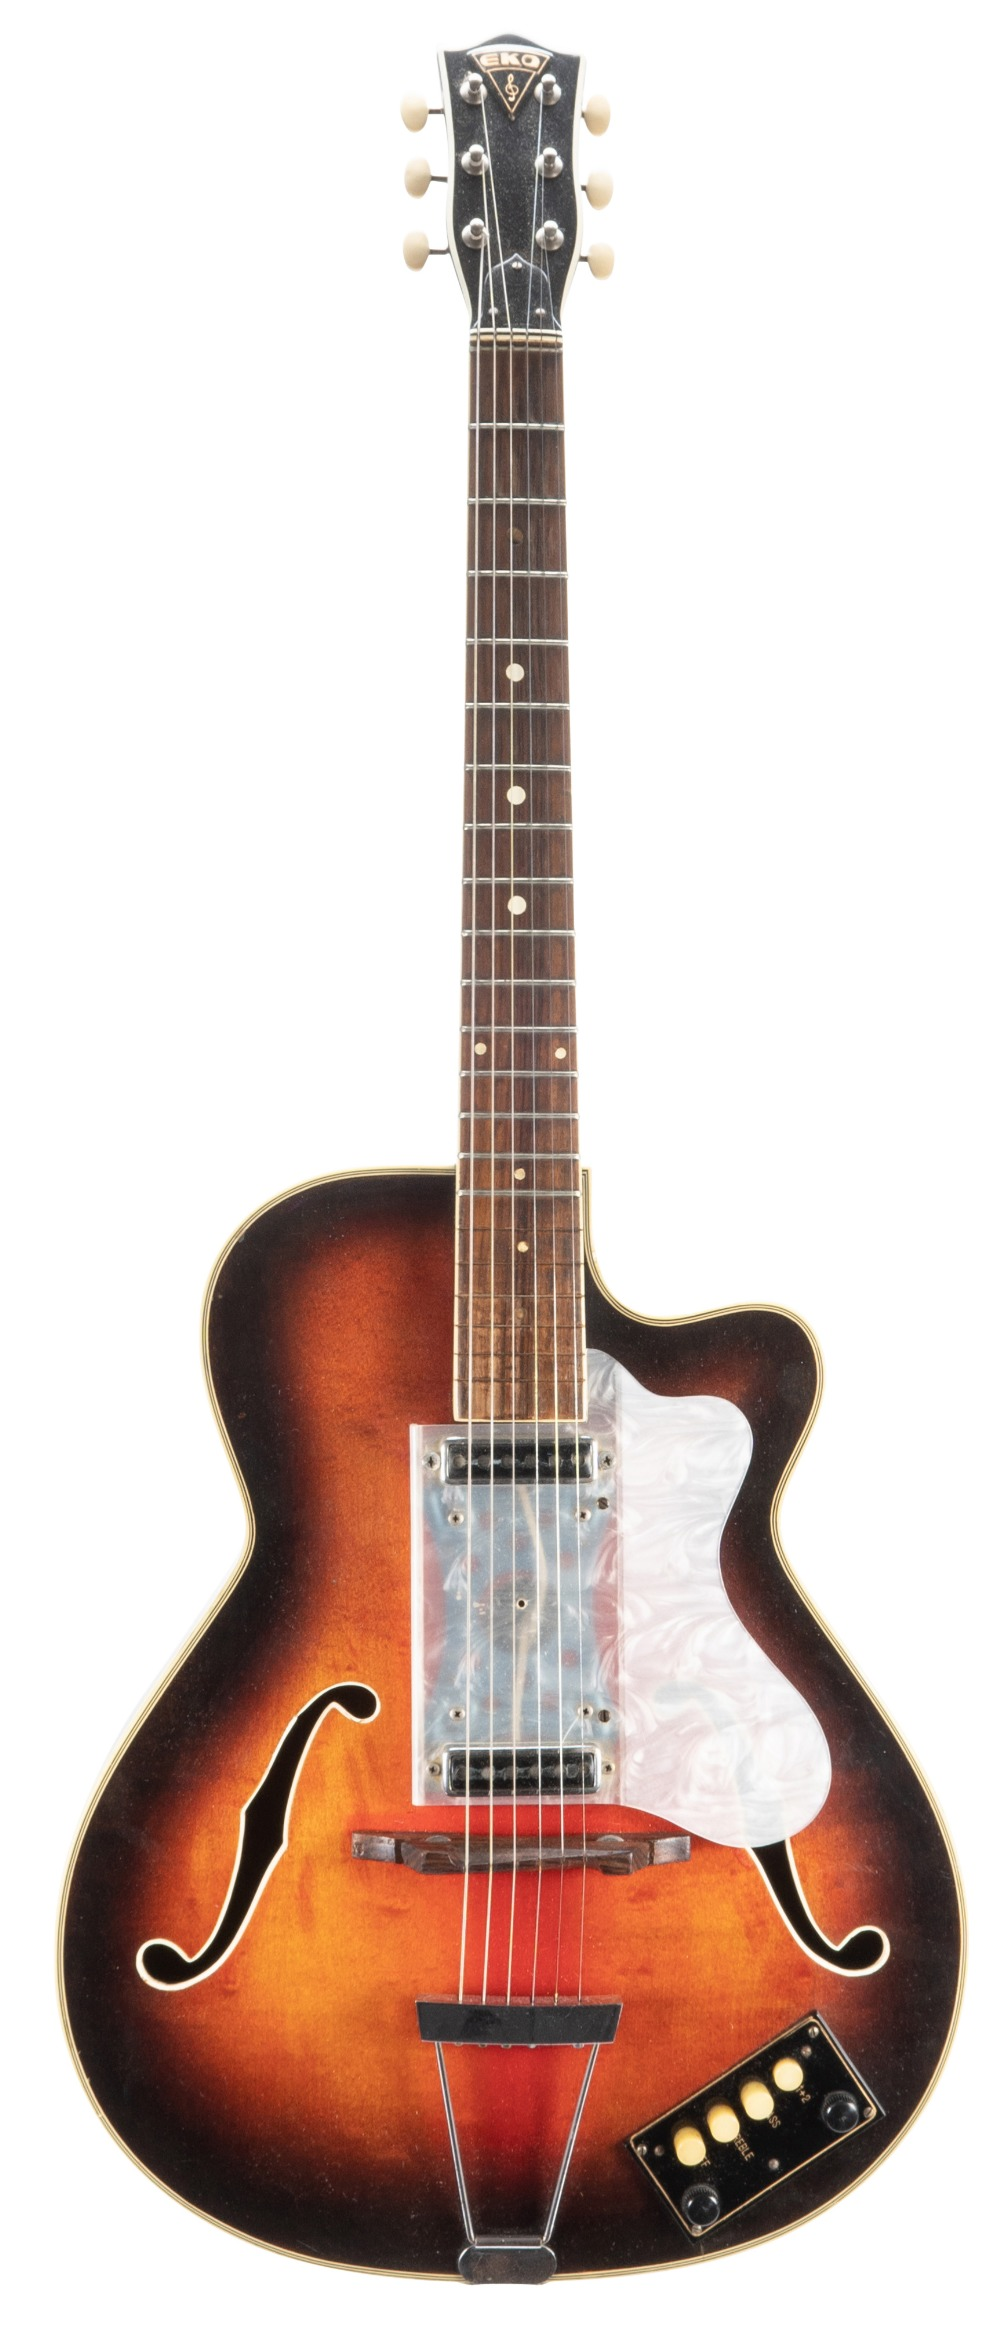 1960s Eko 300 Series hollow body electric guitar in need of restoration, made in Italy; Finish: